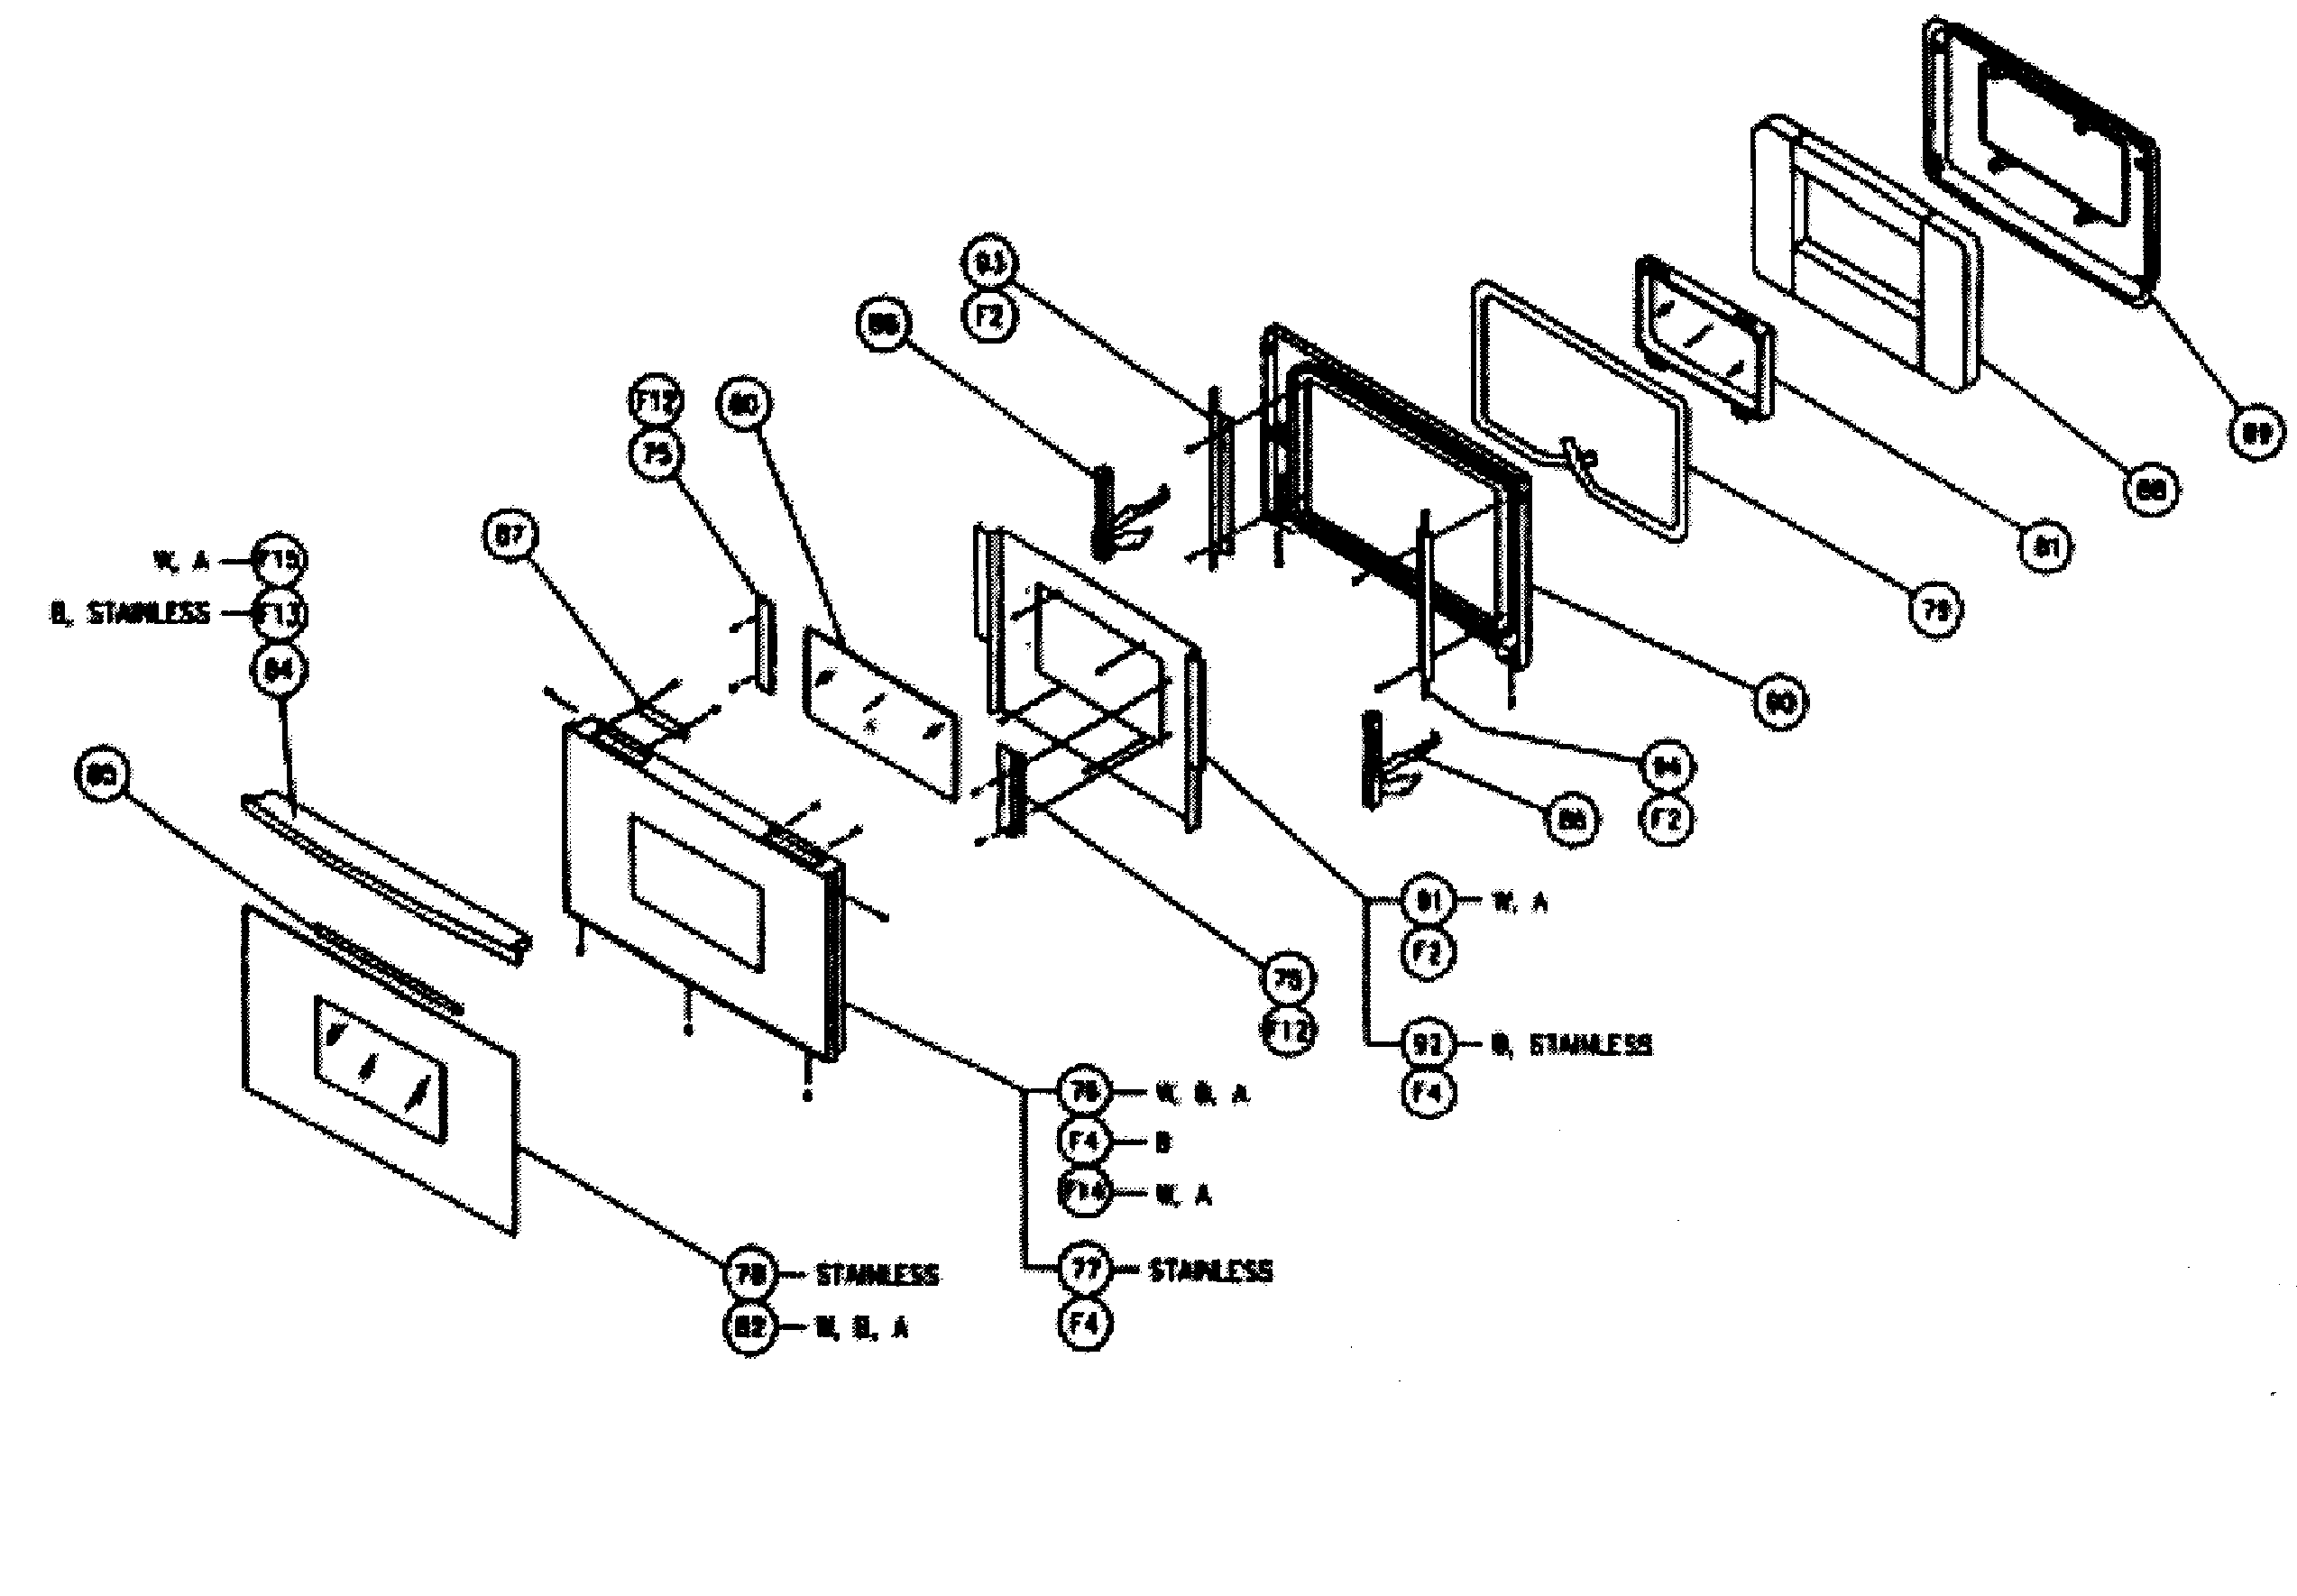 CPS130 Oven Door assy Parts diagram